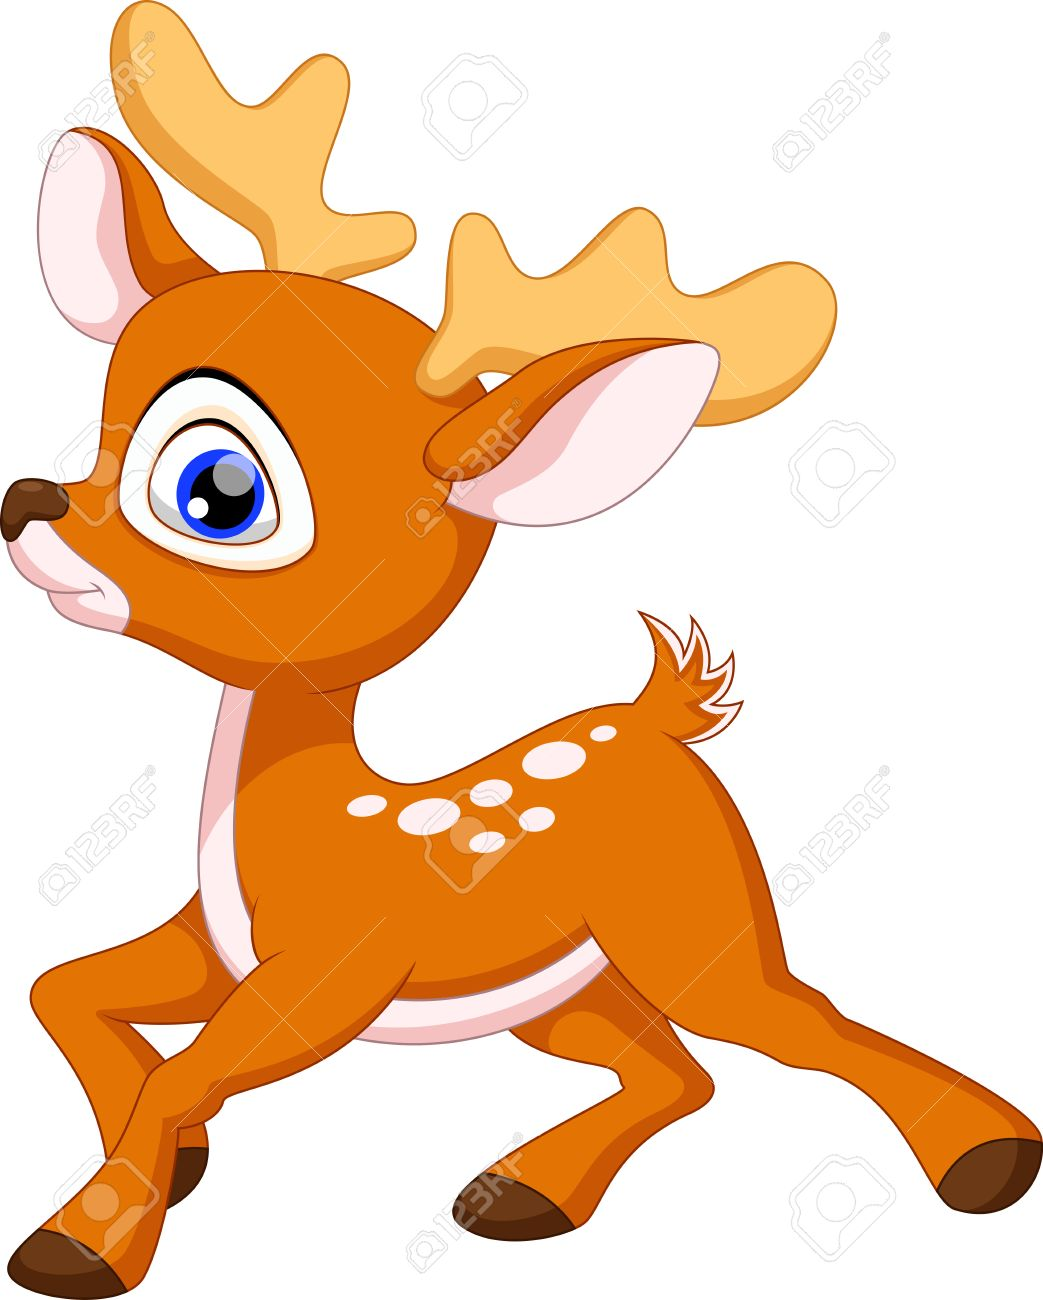 Baby buck clipart clip art transparent stock Baby Deer Clipart - Making-The-Web.com clip art transparent stock